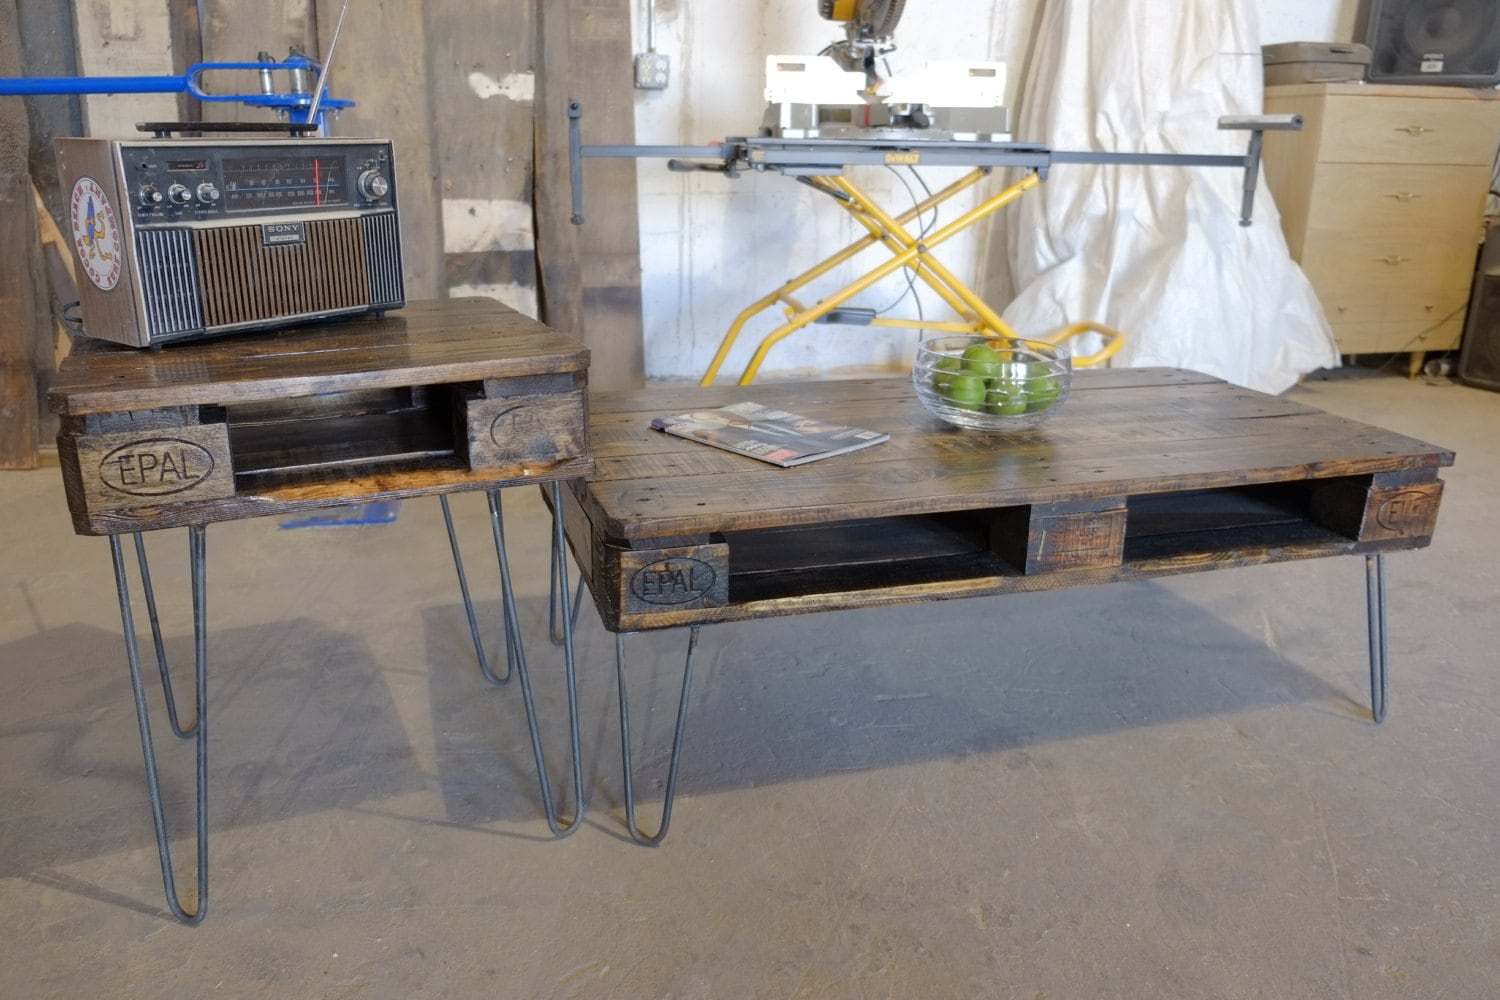 Antique pallet or skid coffee table wend tables 2 piece set antique pallet or skid coffee table wend tables 2 piece set geotapseo Gallery